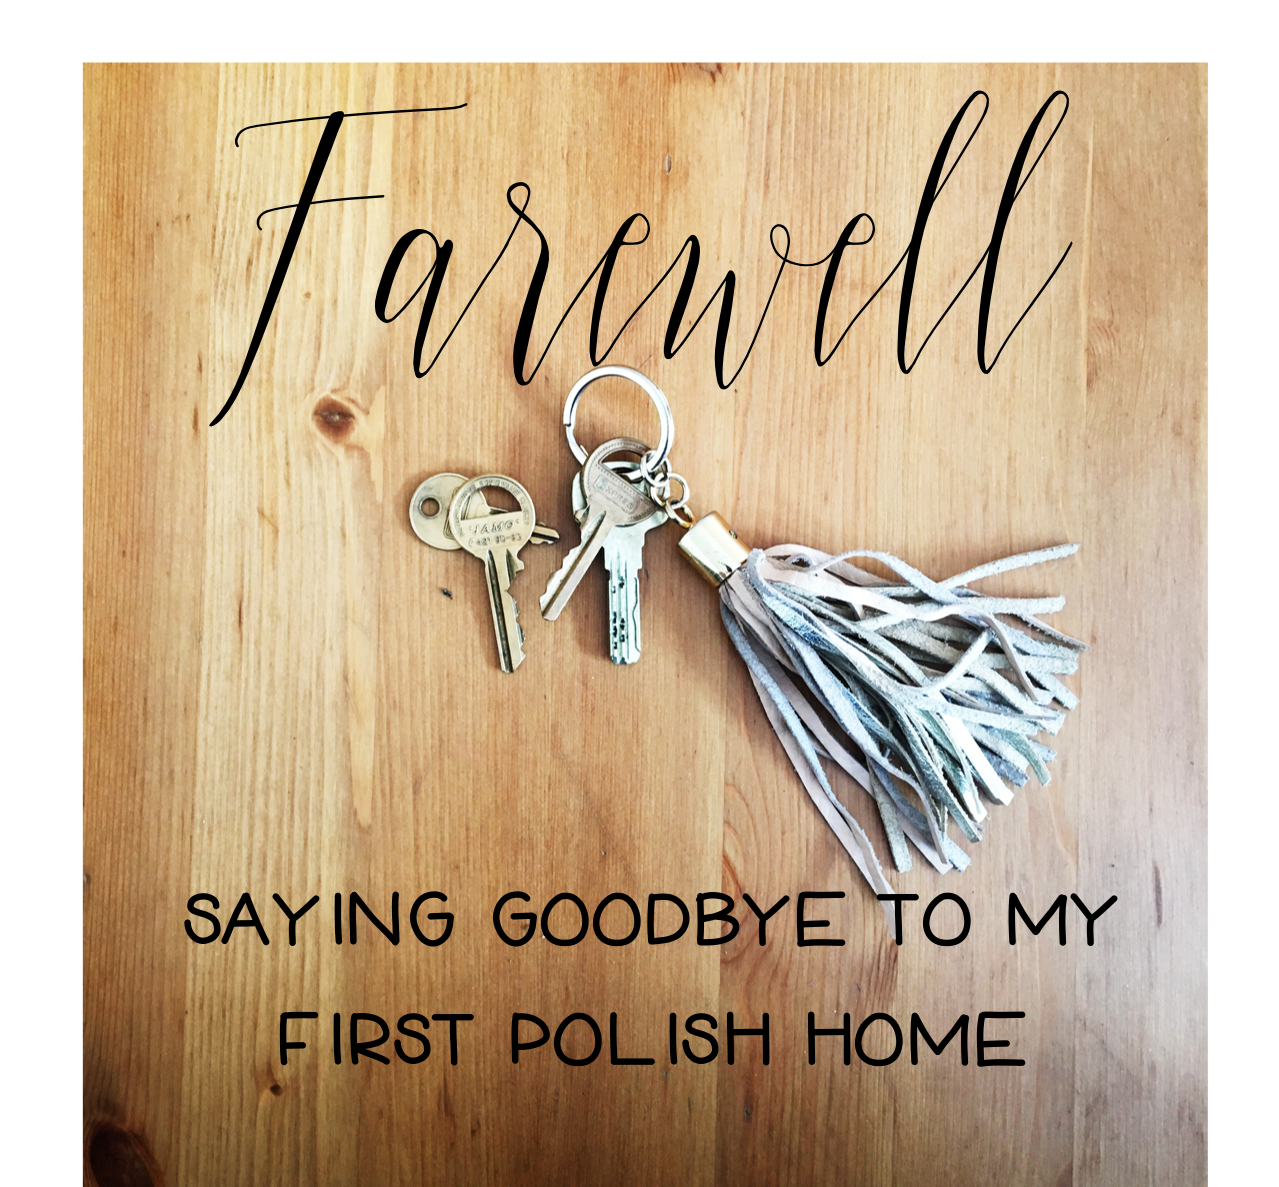 Farewell Skawinska, My First Polish Home